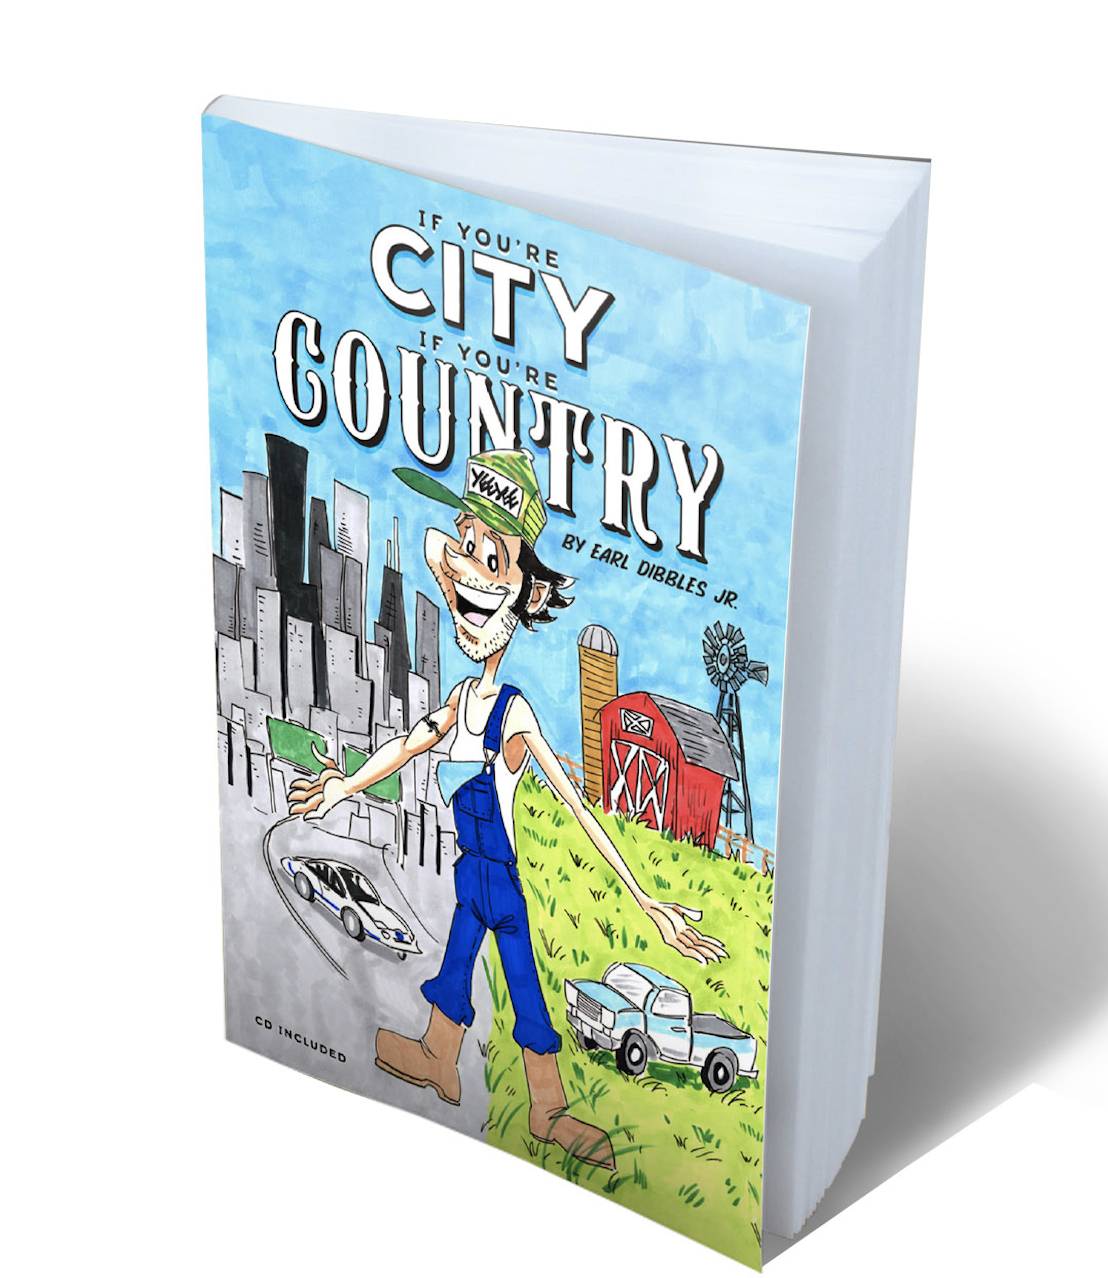 If You're City If You're Country